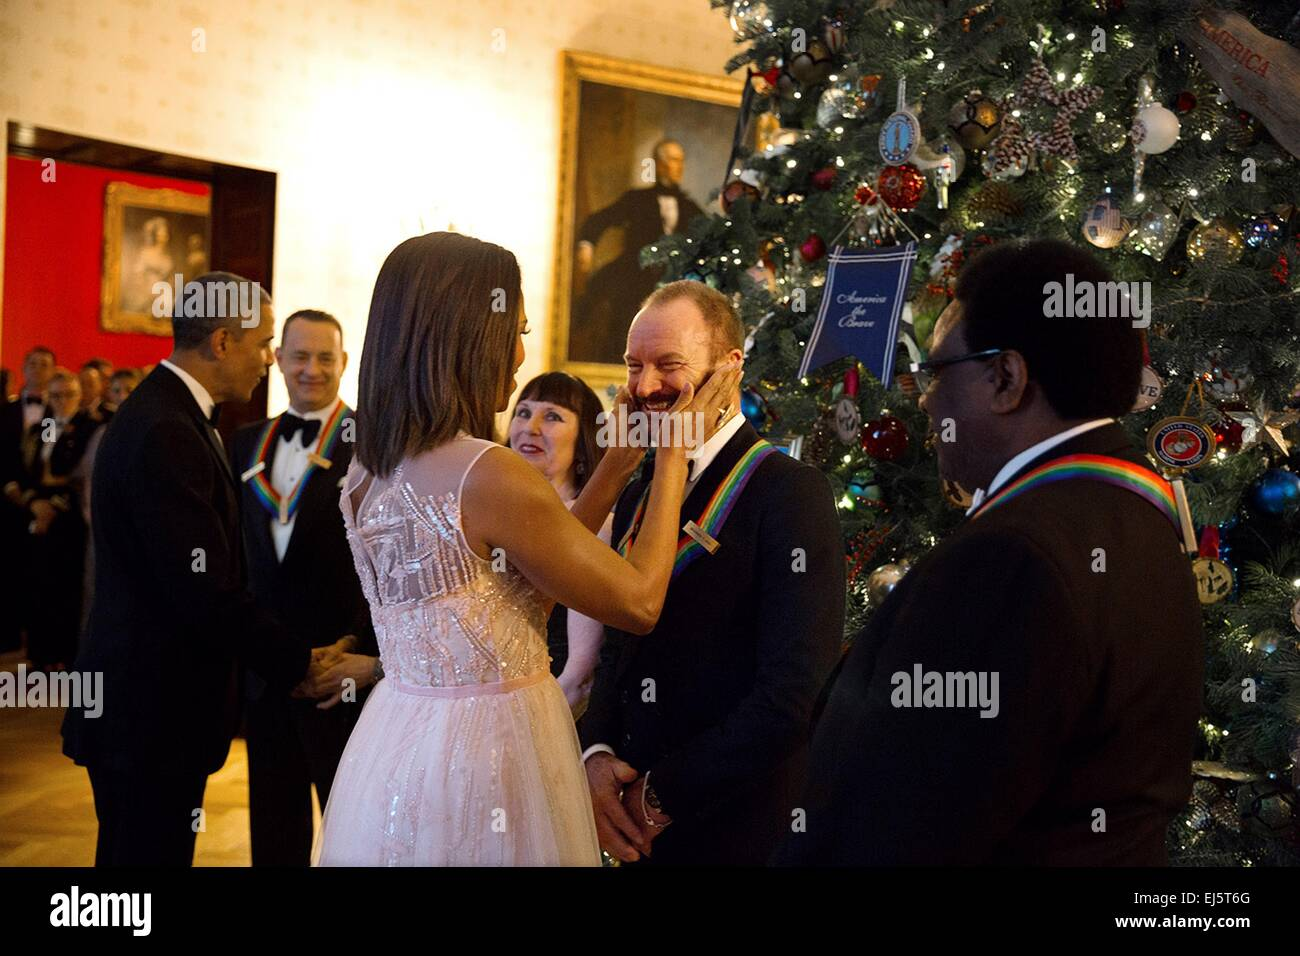 First lady michelle obama greets musician sting while president first lady michelle obama greets musician sting while president barack obama greets other honorees including tom hanks lily tomlin and patricia mcbride in m4hsunfo